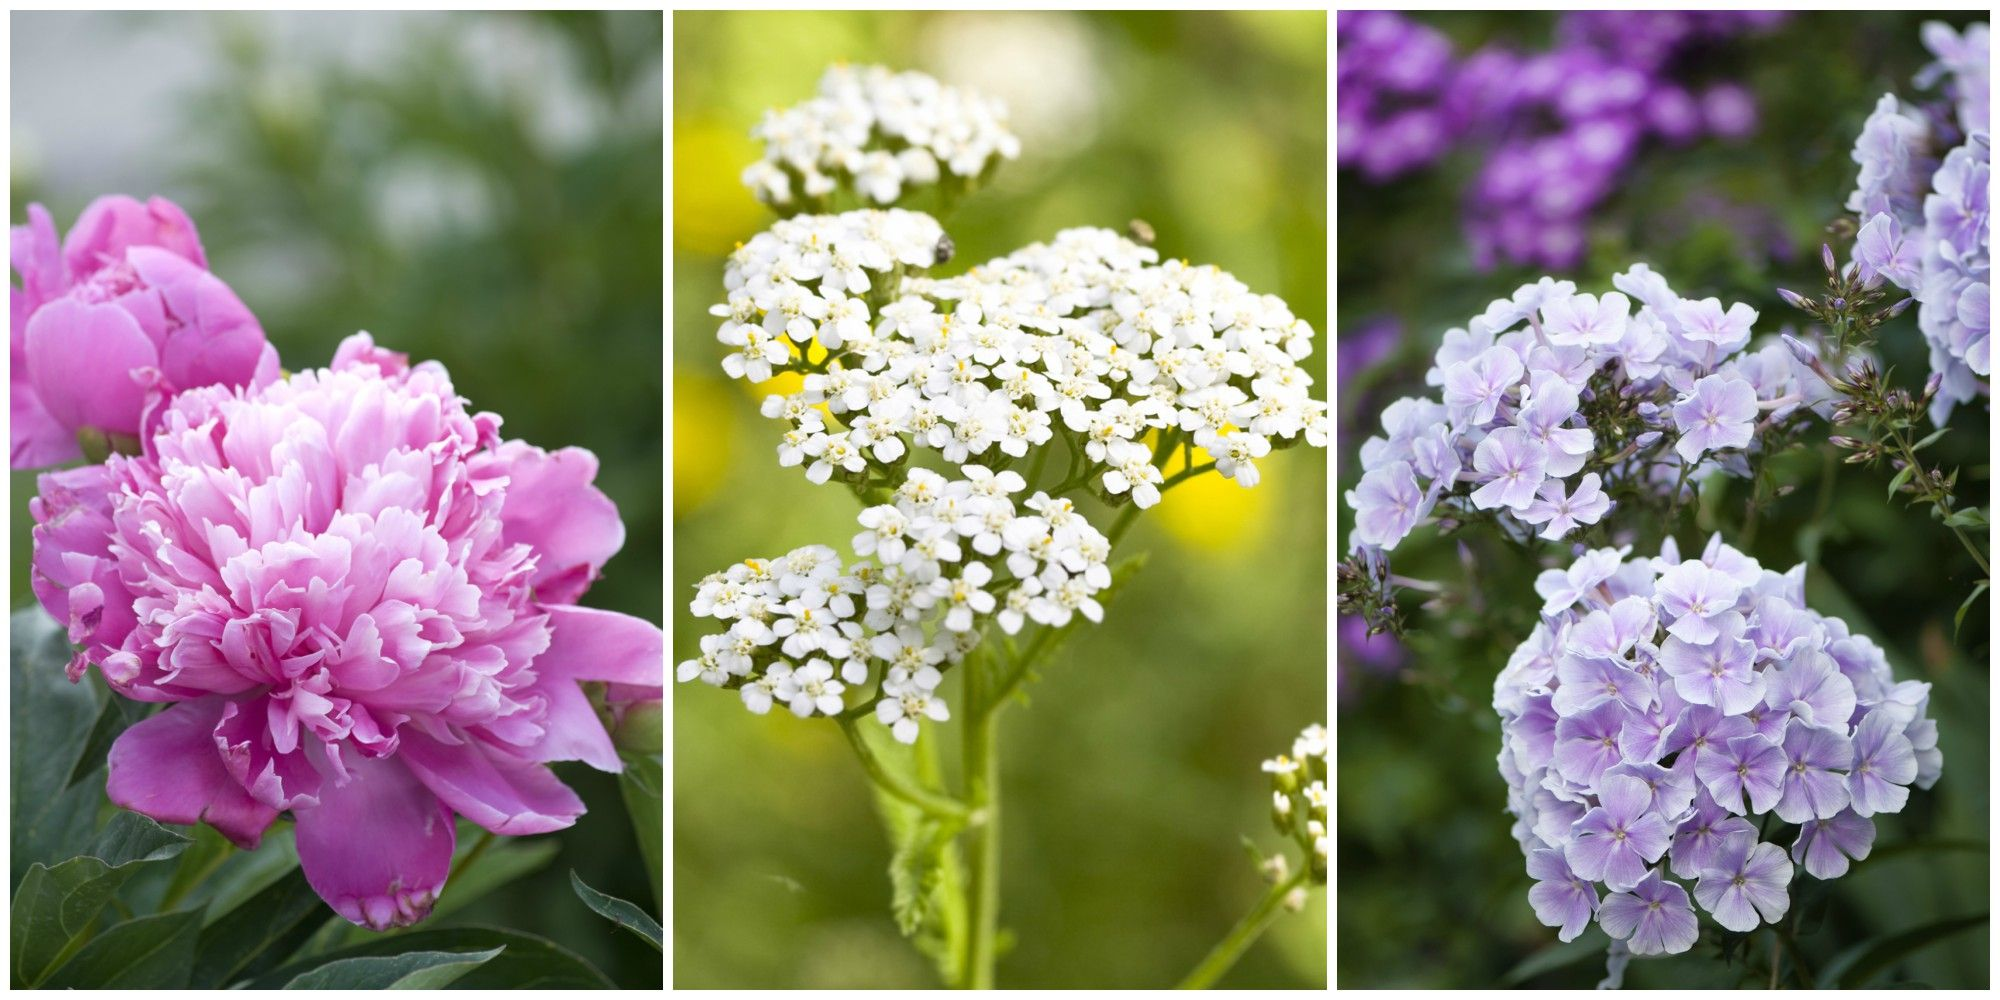 20 Best Perennial Flowers Ideas For Easy Perennial Flowering Plants